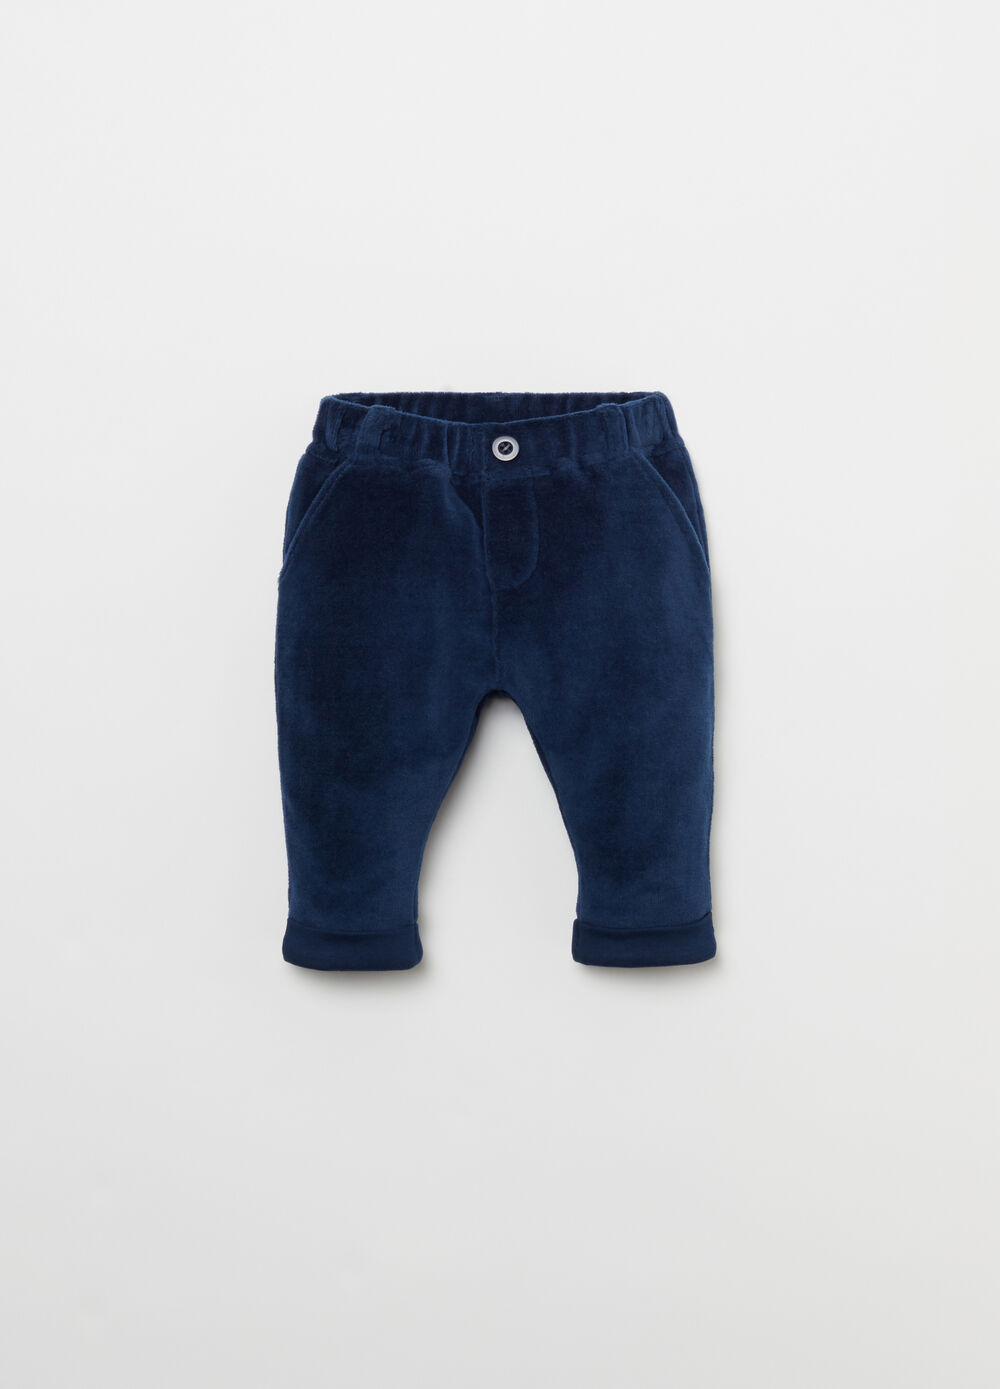 Cotton blend trousers with turn-ups and pockets